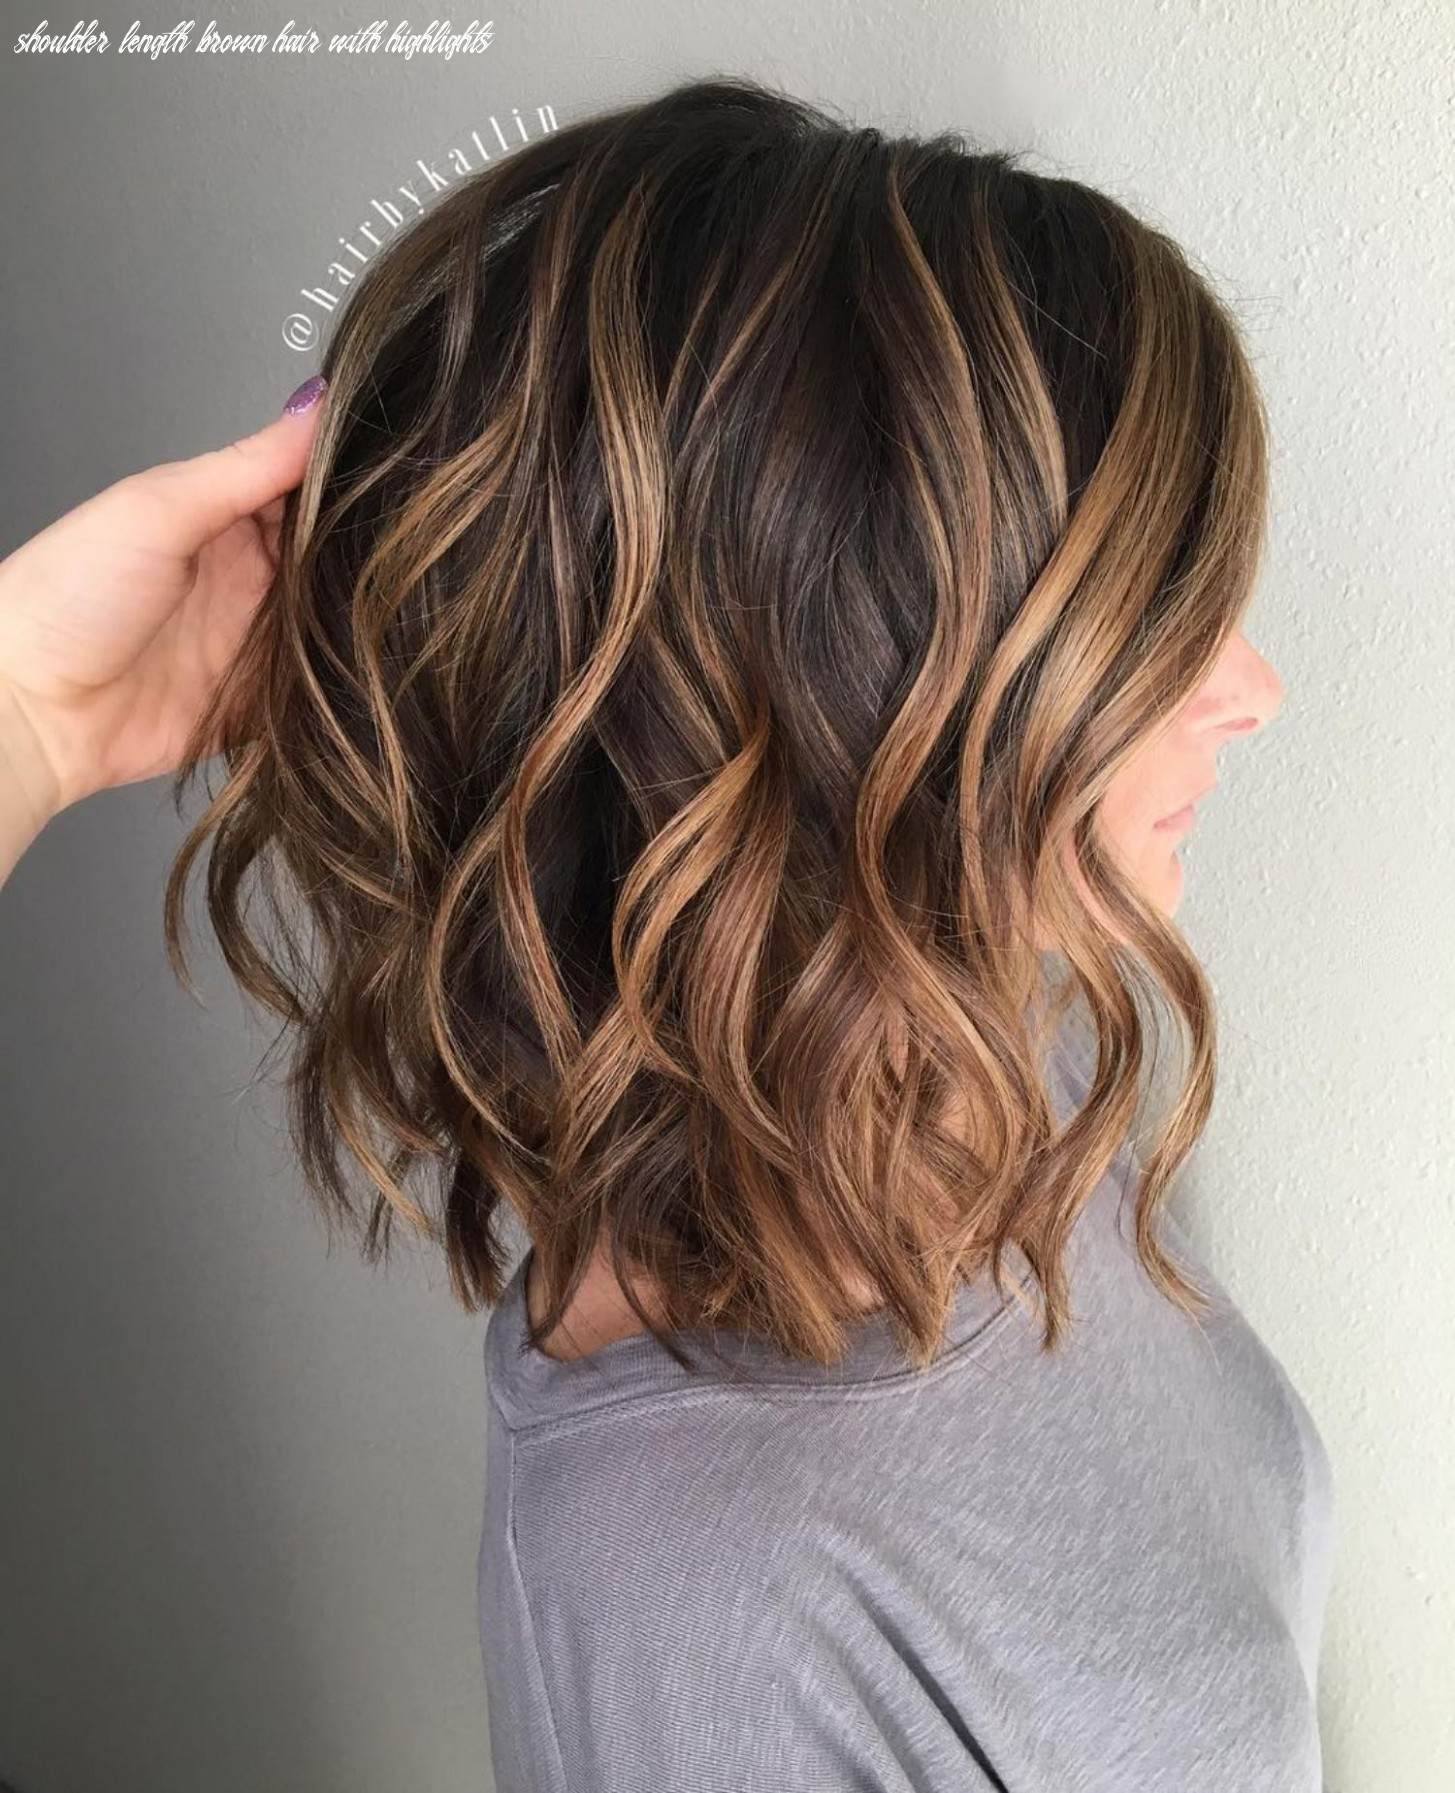 Pin on hairstyle shoulder length brown hair with highlights